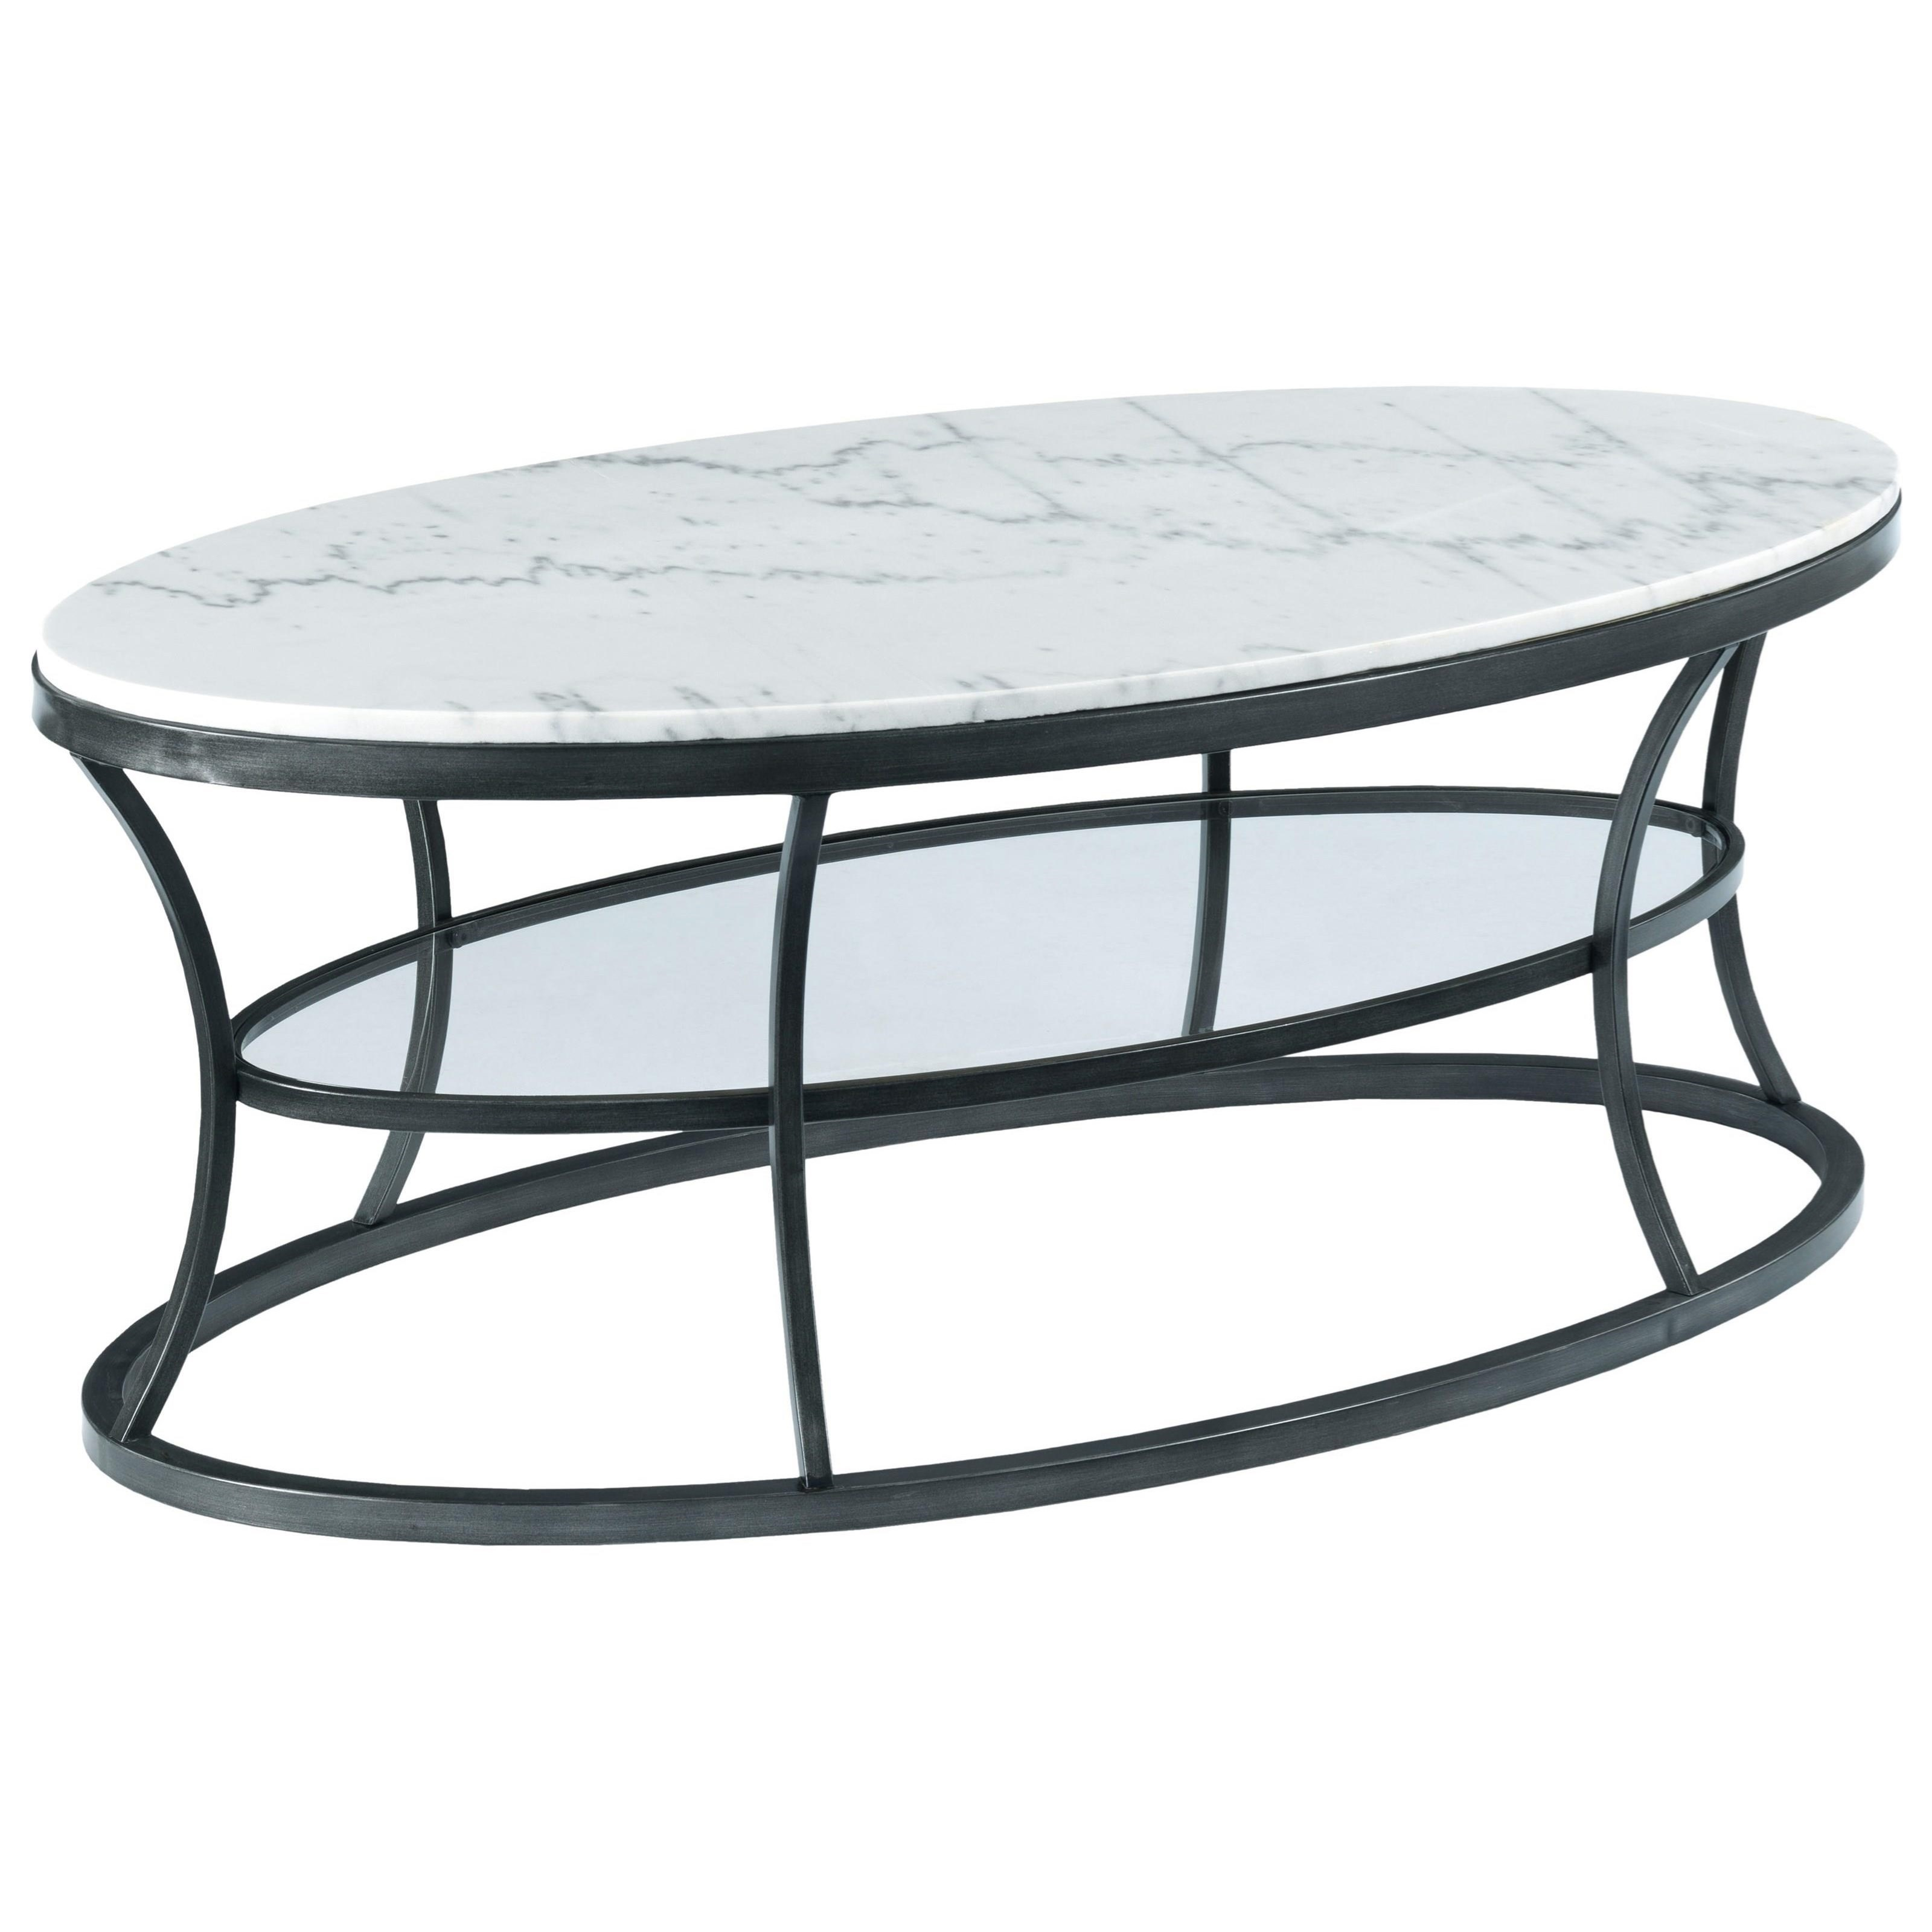 drop leaf side table probably outrageous cool white marble end hammary impact oval cocktail with top and glass shelf products color item number set tables low living room round